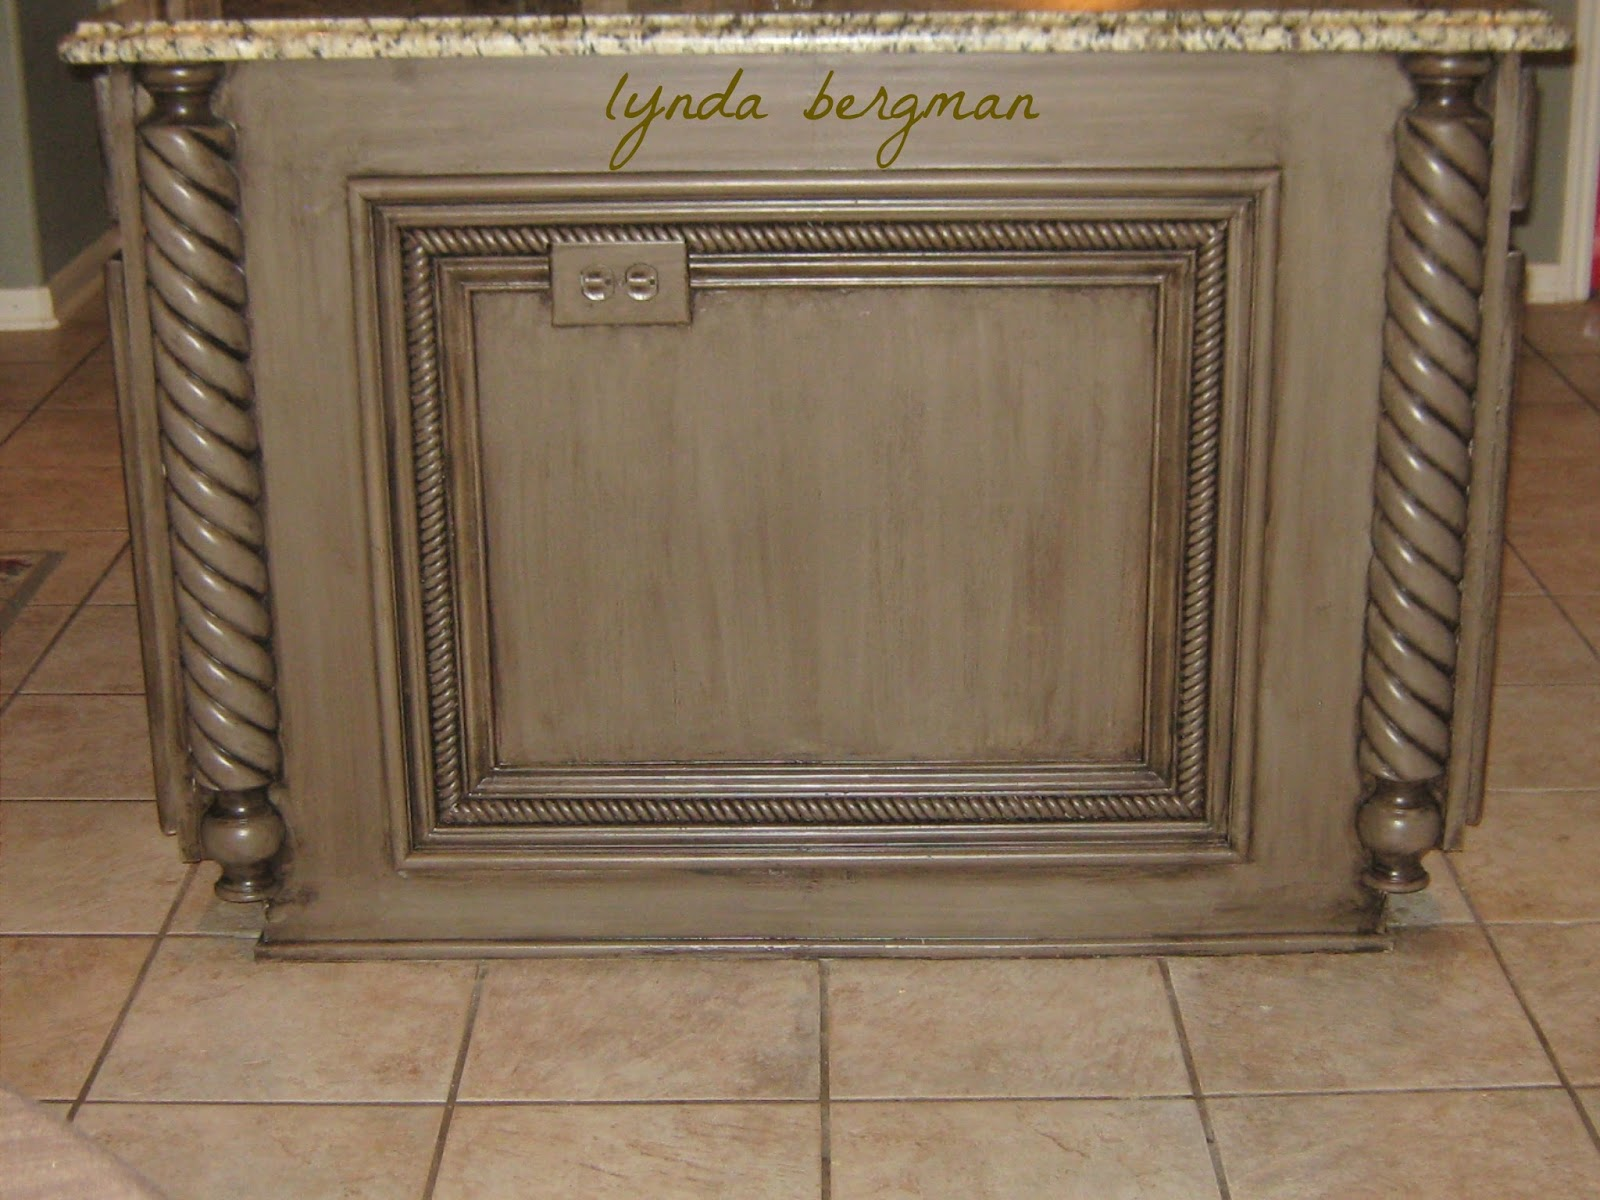 LYNDA BERGMAN DECORATIVE ARTISAN A MAKEOVER FOR ELSA S KITCHEN